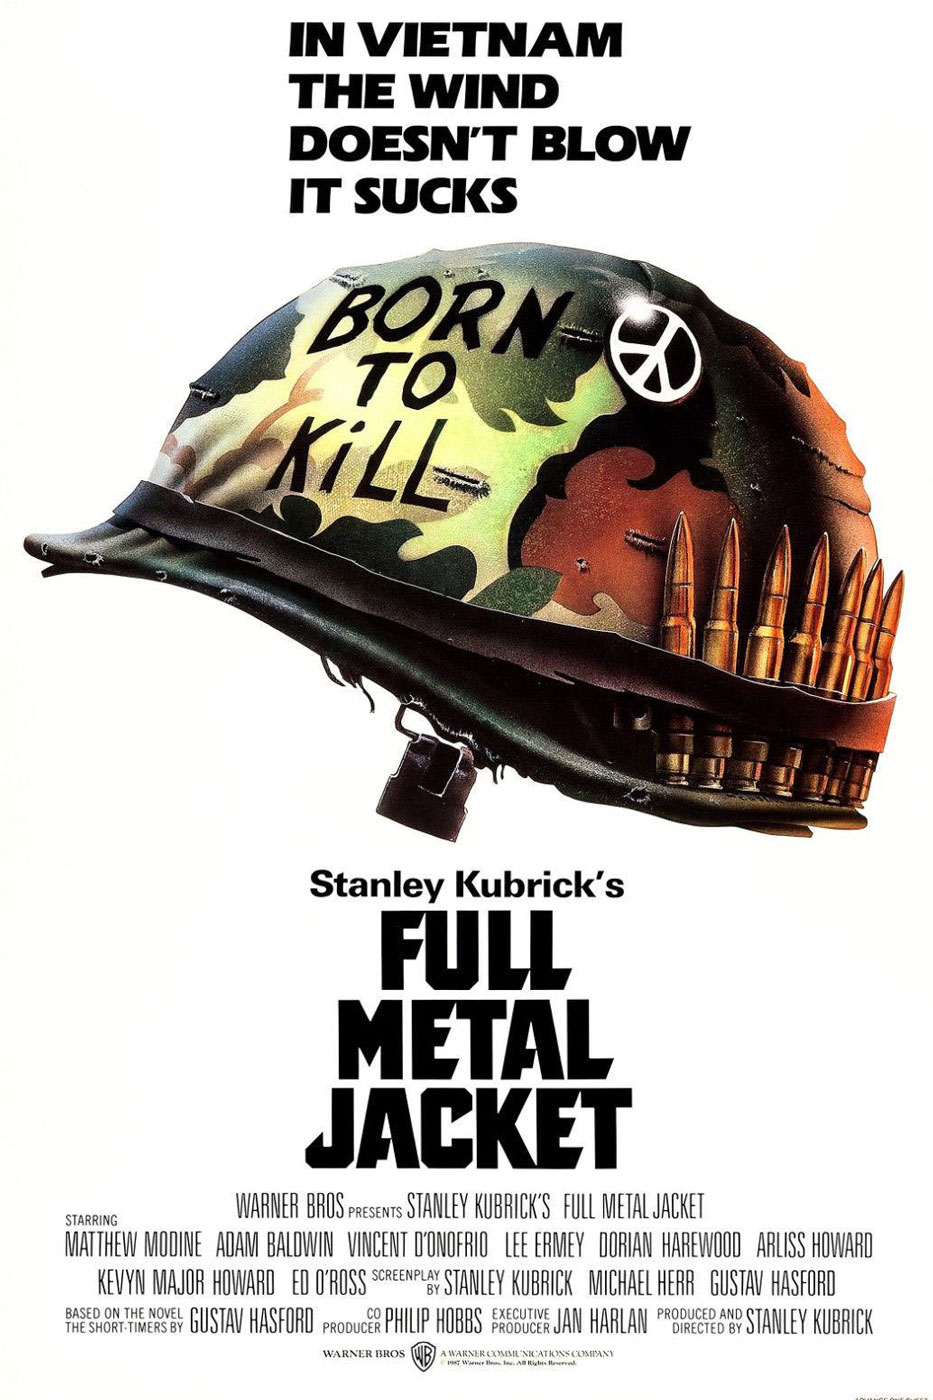 Full Metal Jacket - Stanley Kubrick (1987)